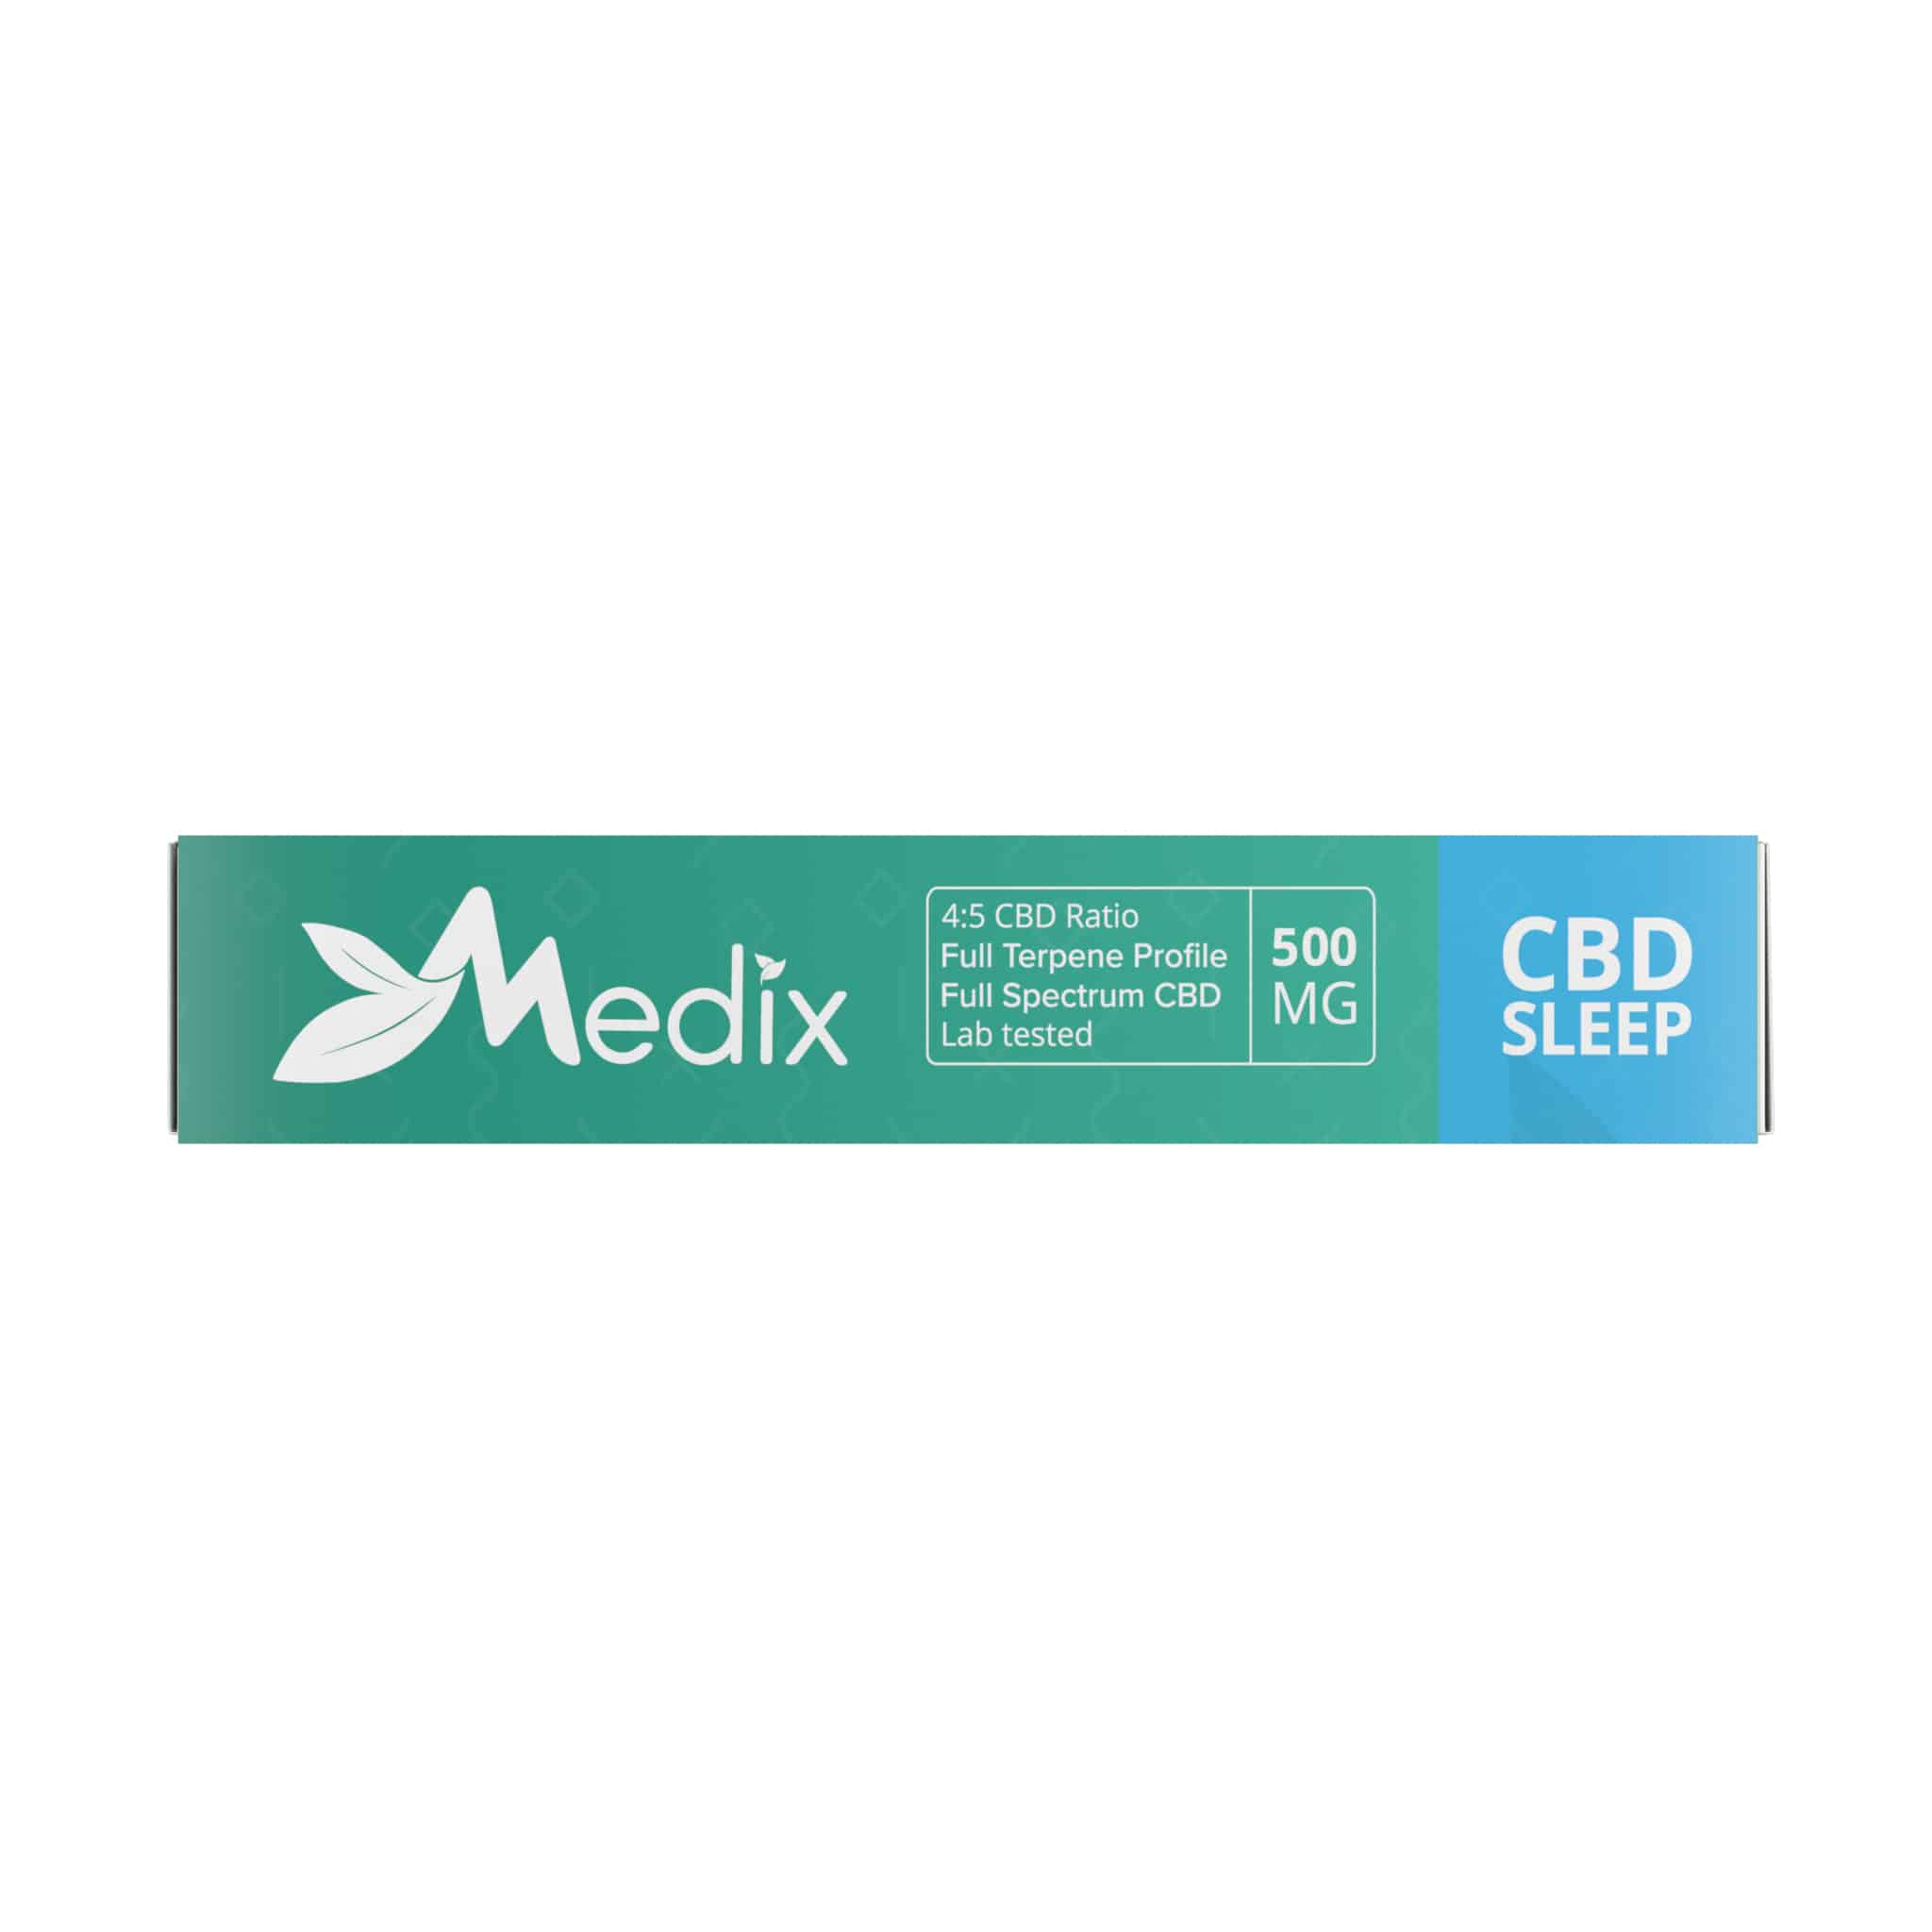 medix-sleep-500mg